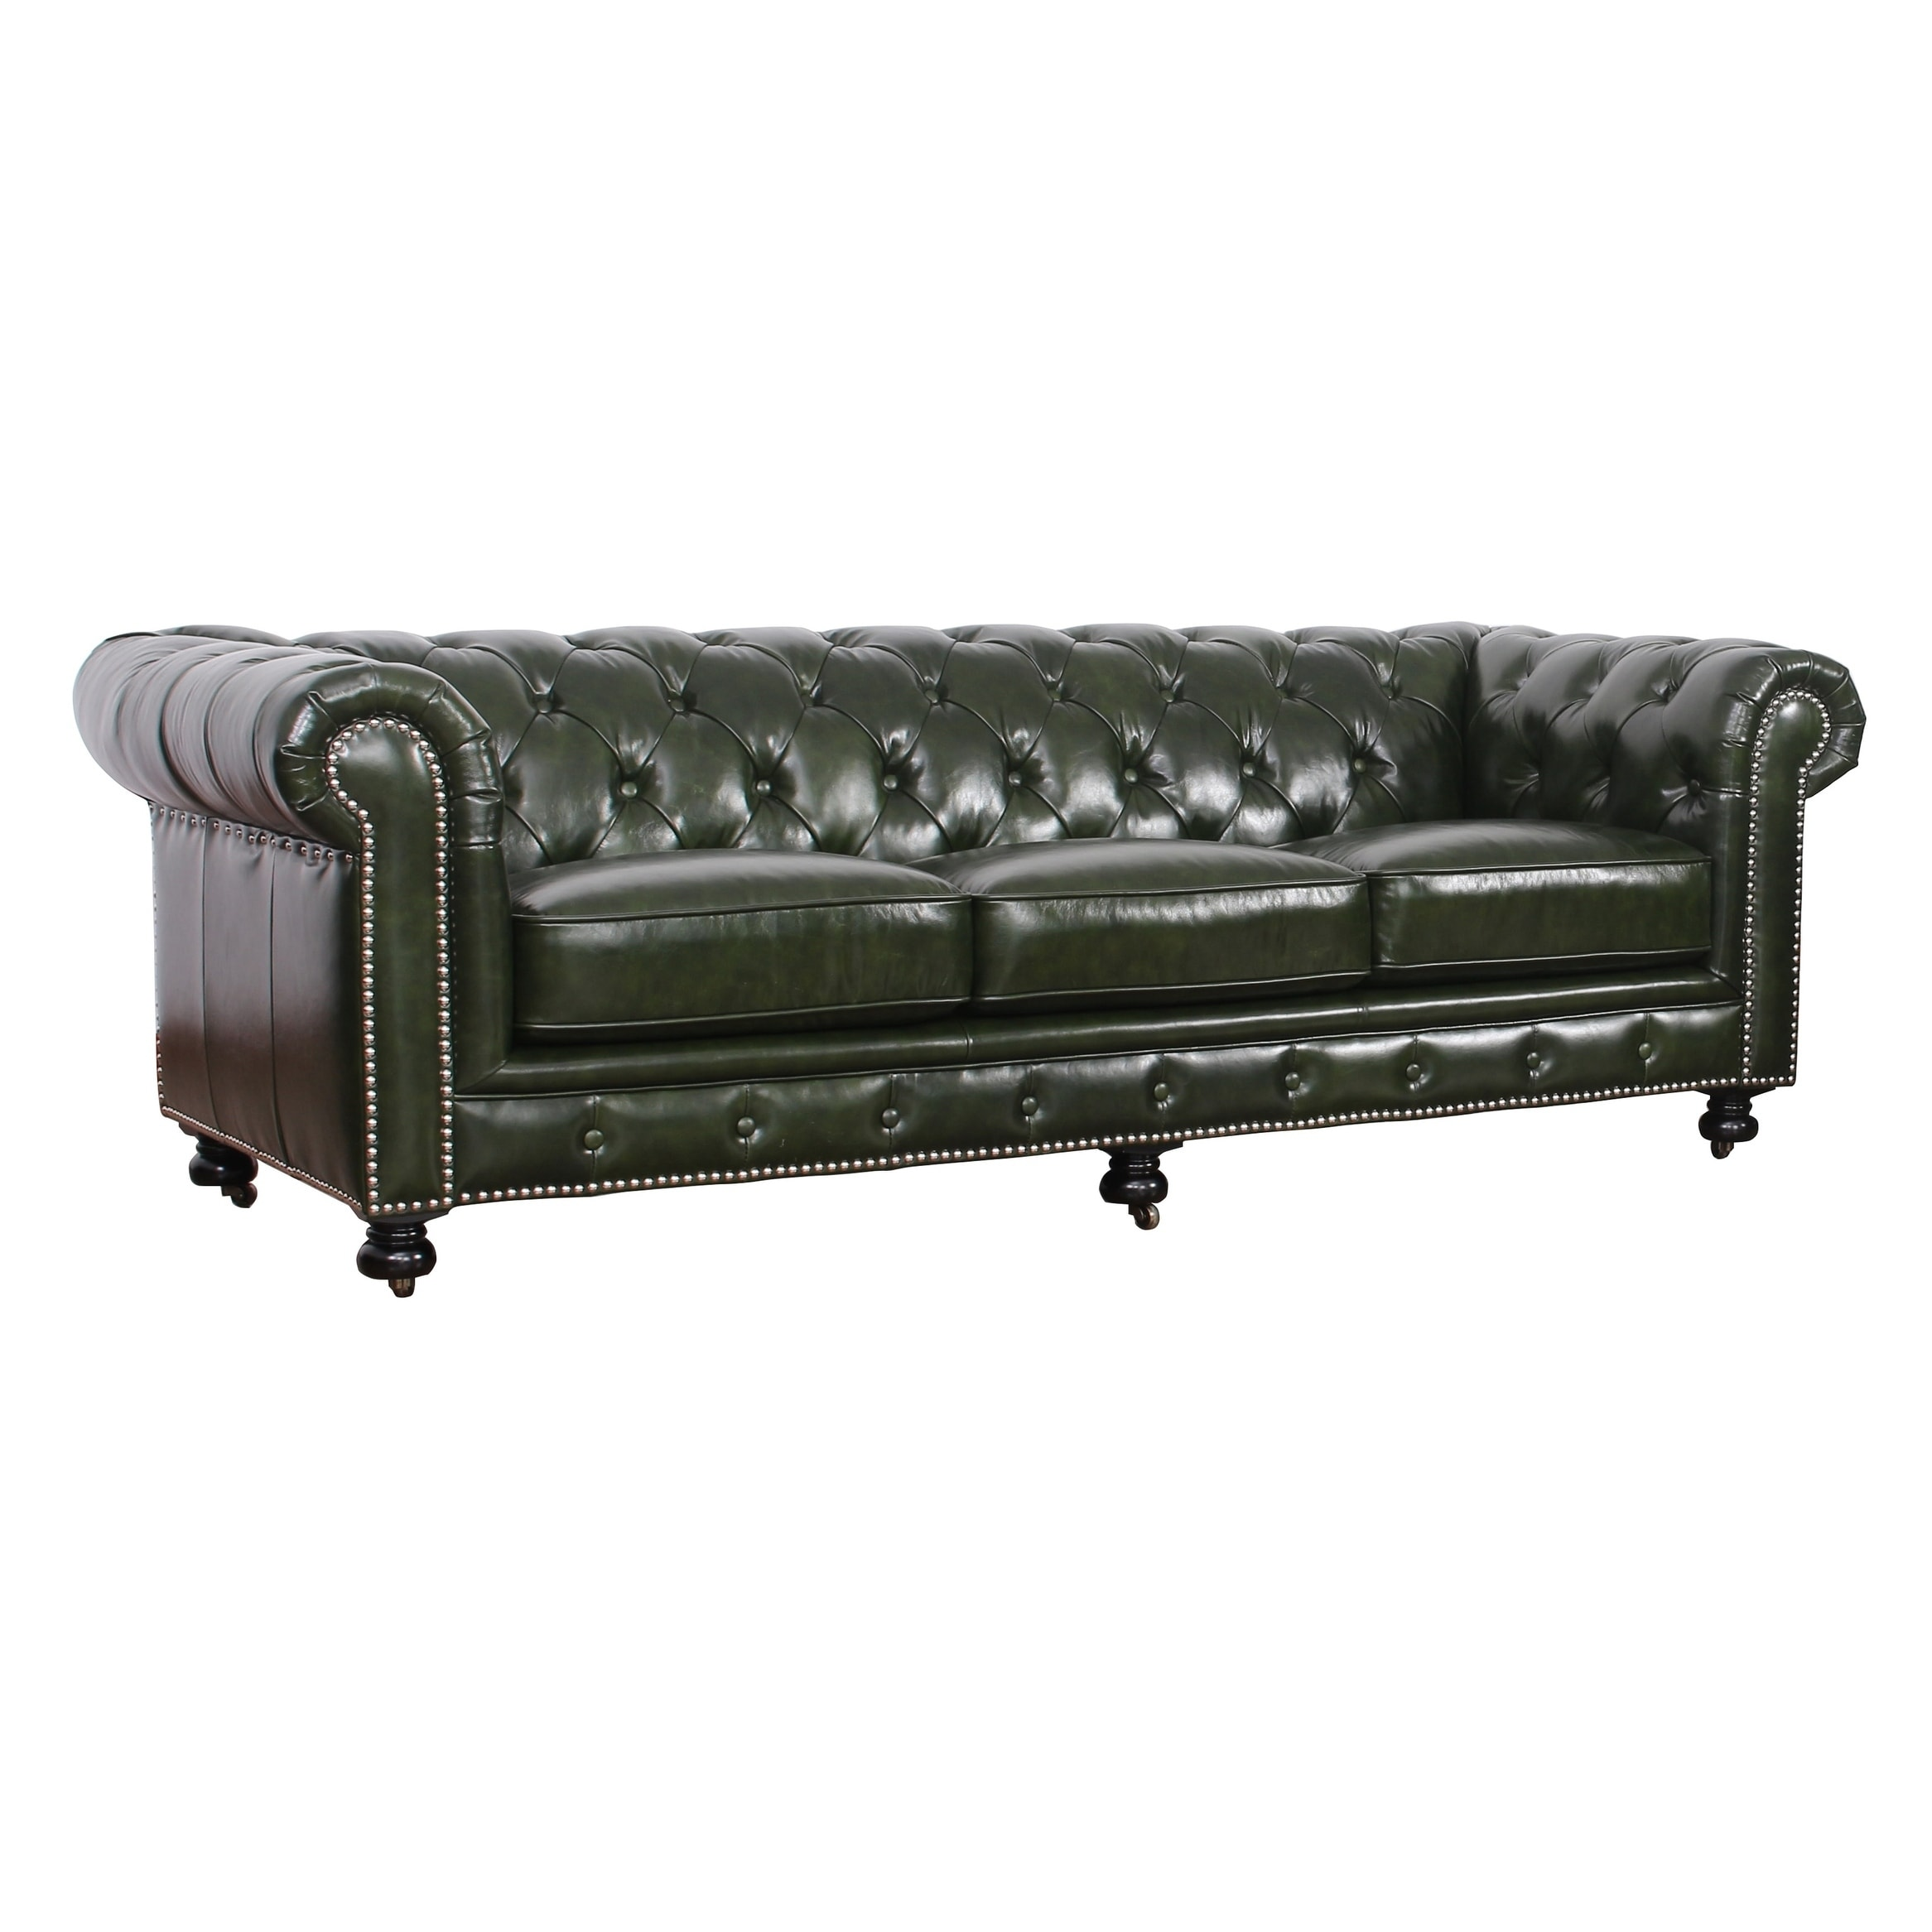 Abbyson Virginia Green Waxed Leather Chesterfield Sofa On Free Shipping Today 18107892